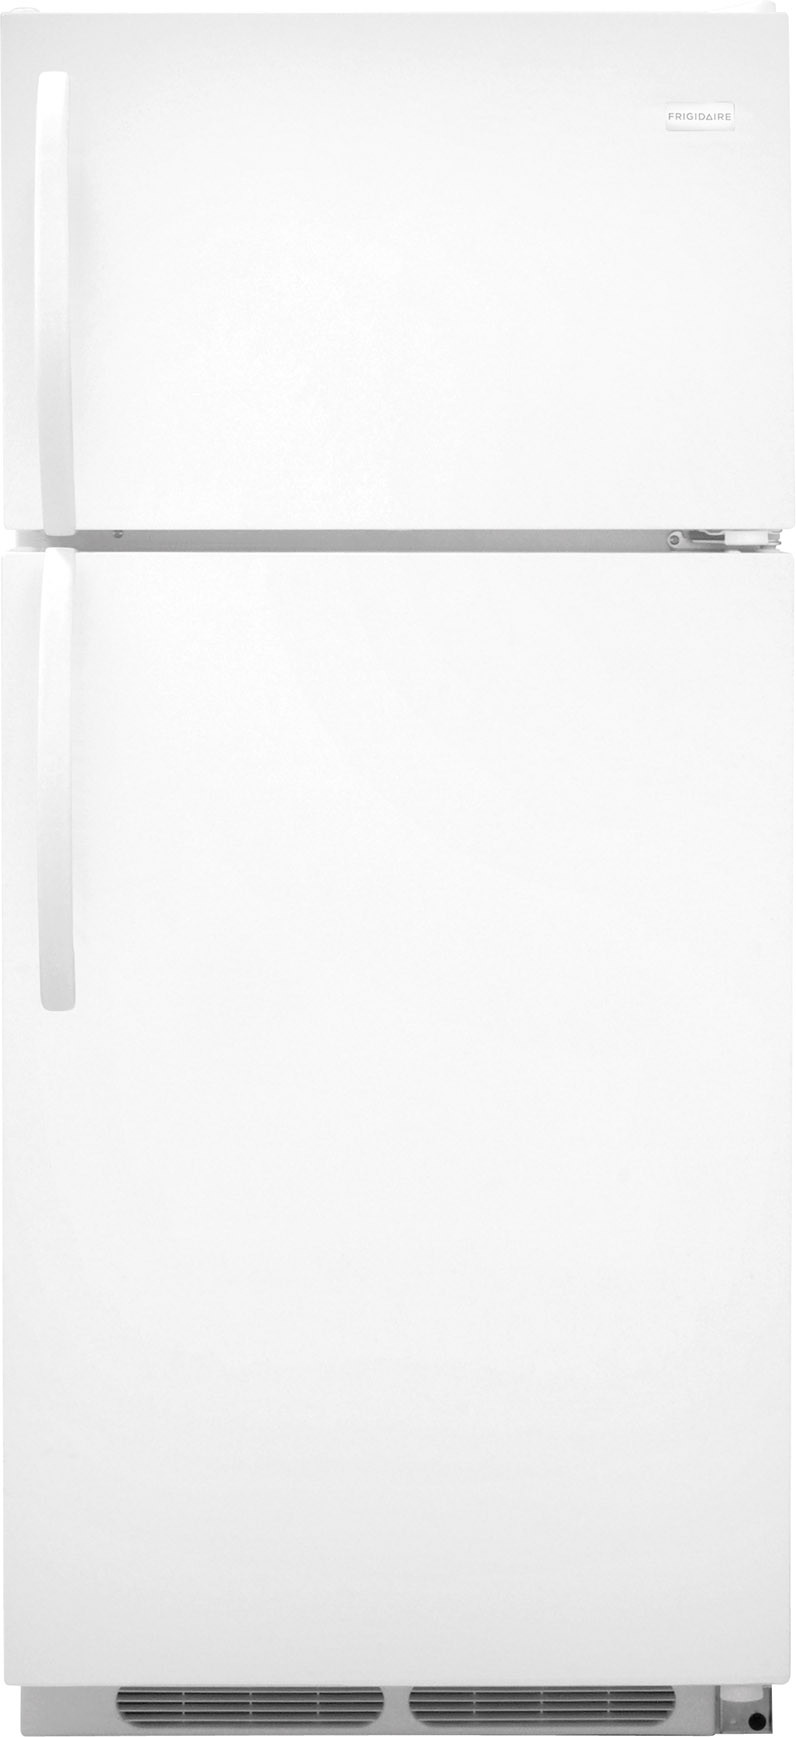 Frigidaire Ffht1621qw 28 Inch Top Freezer Refrigerator With Energy Refrigeration Wiring Diagram 5 Ton Star Store More Bin Humidity Controlled Crispers Dairy Ada Compliant